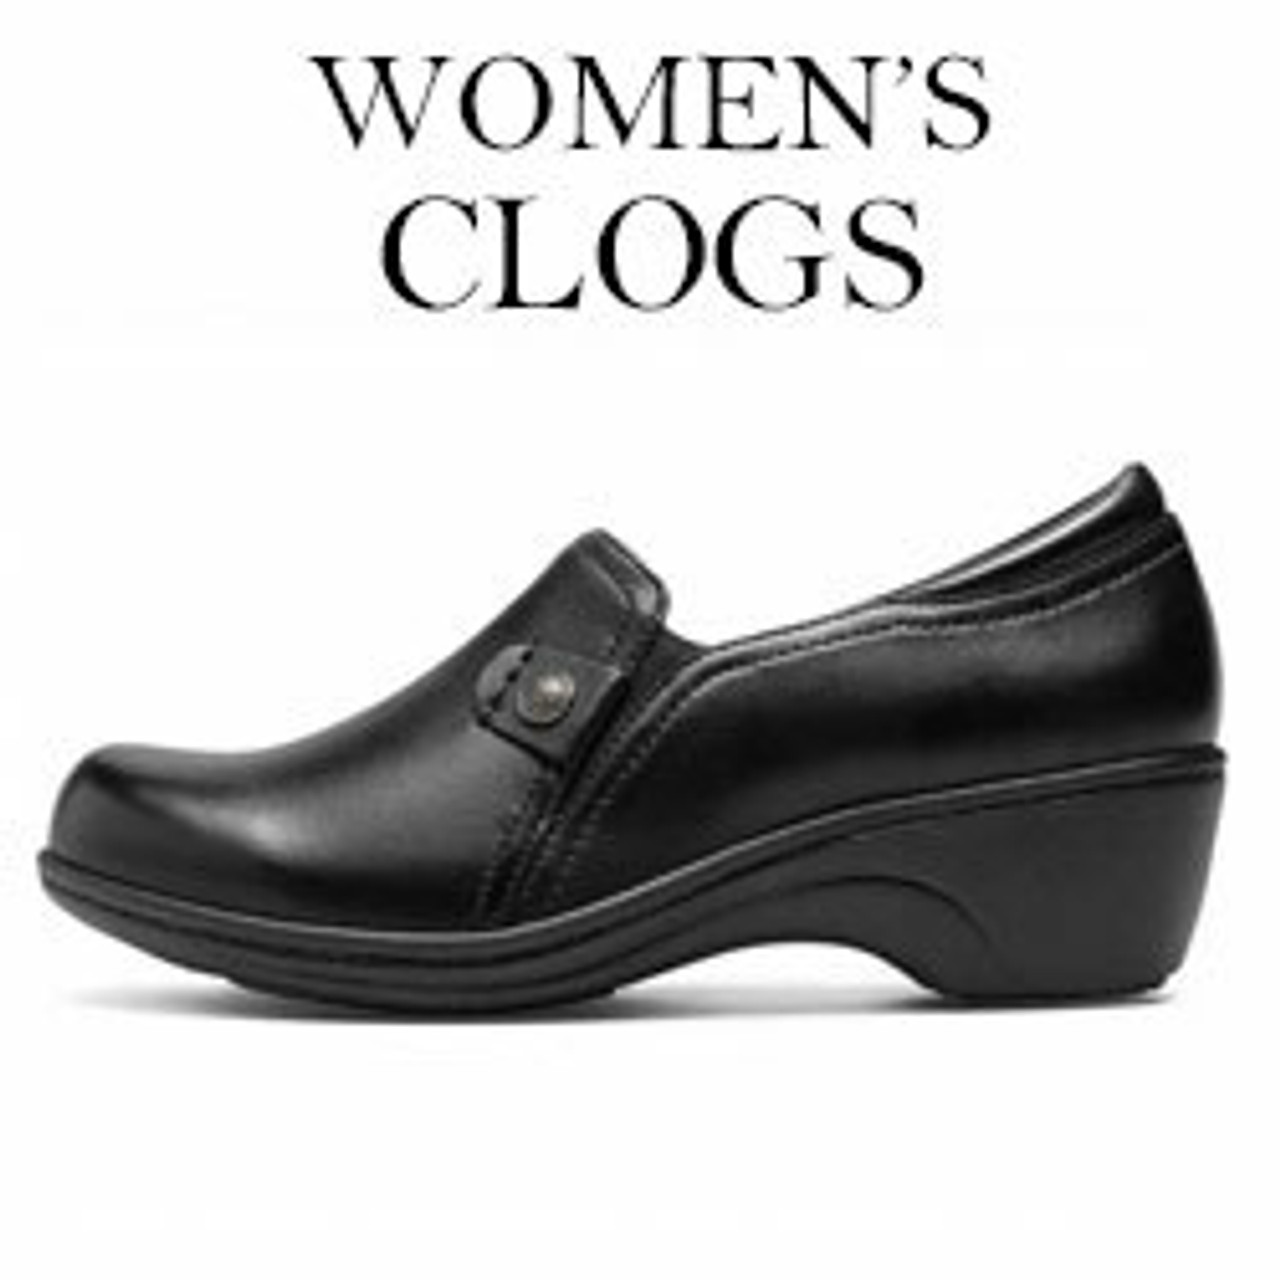 Orthopedic Clogs For Women | Clog Shoes For Women